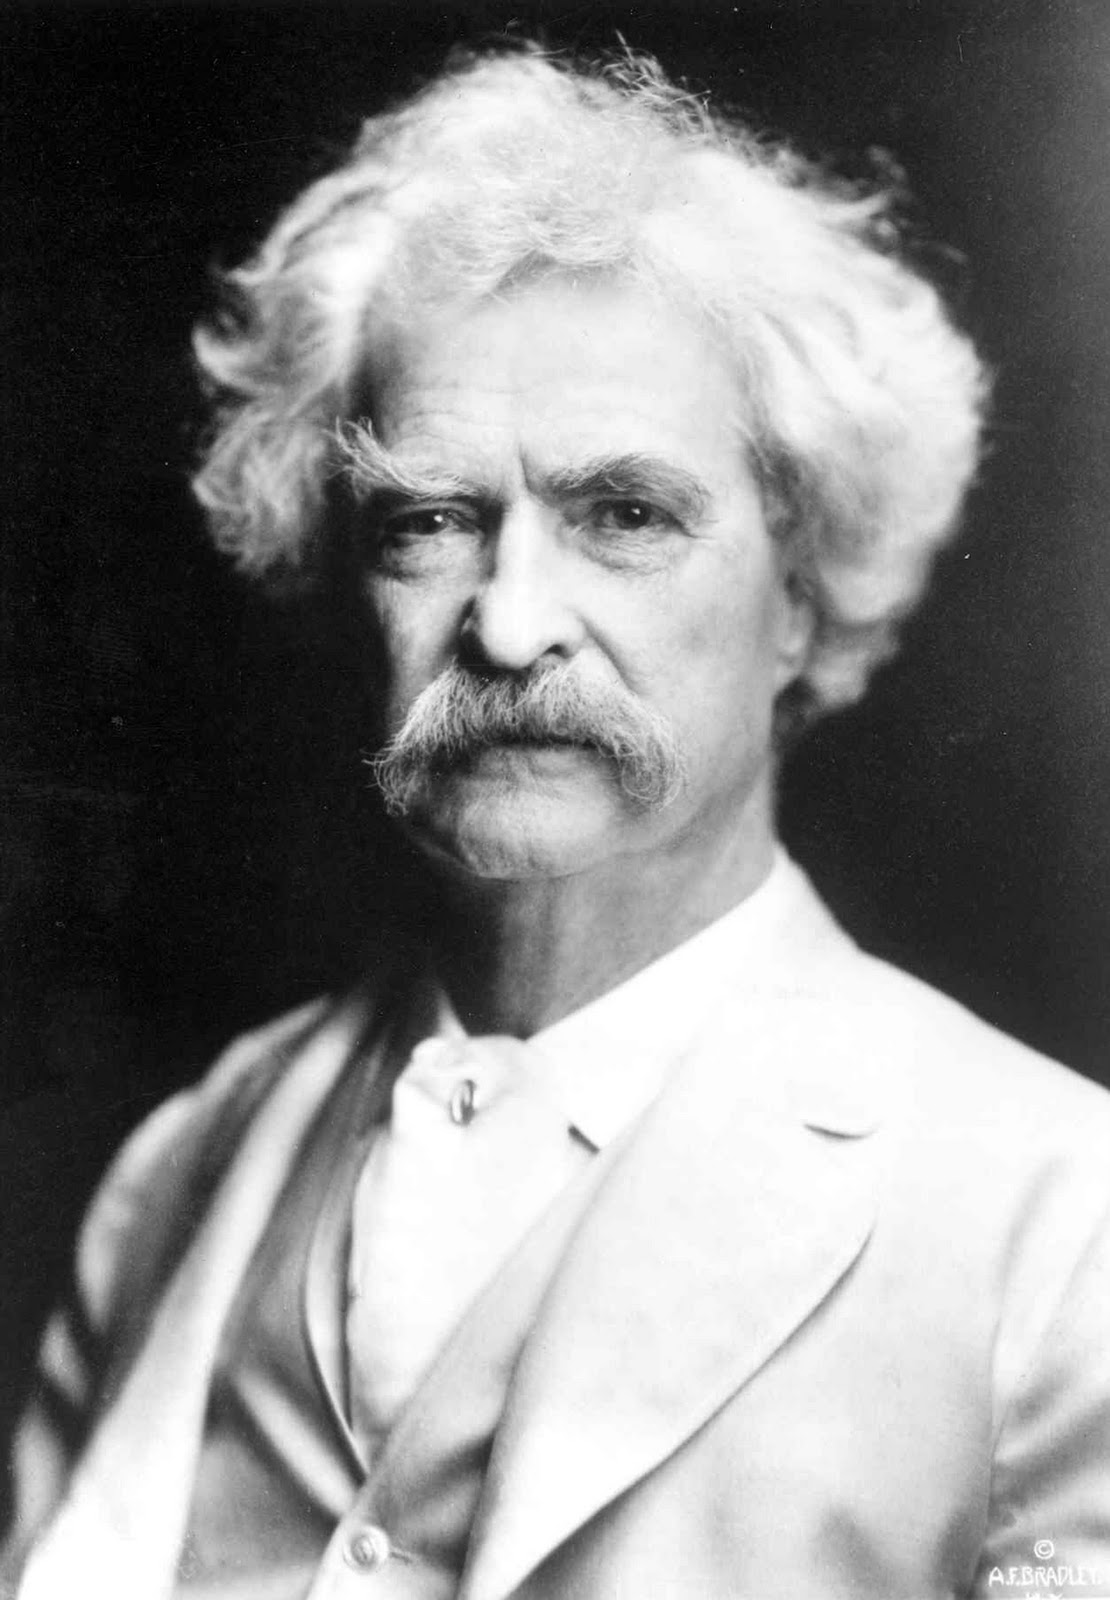 philosophies of men mingled scripture mark twain and god the mark twain and god the almighty